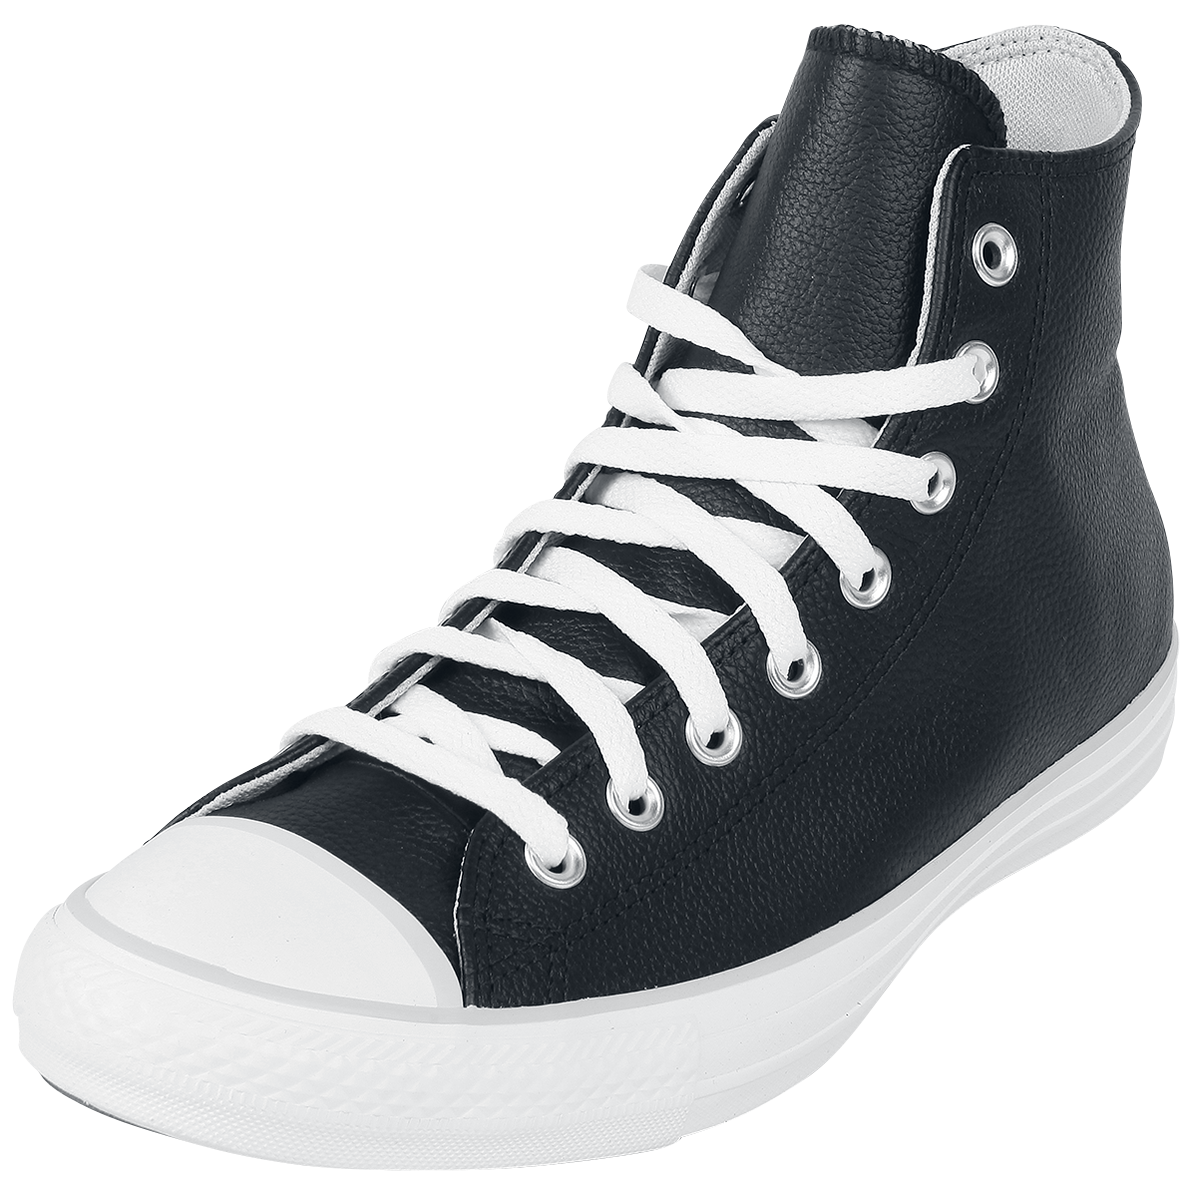 Converse - Chuck Taylor All Star Seasonal Leather Hi - Sneakers - black image